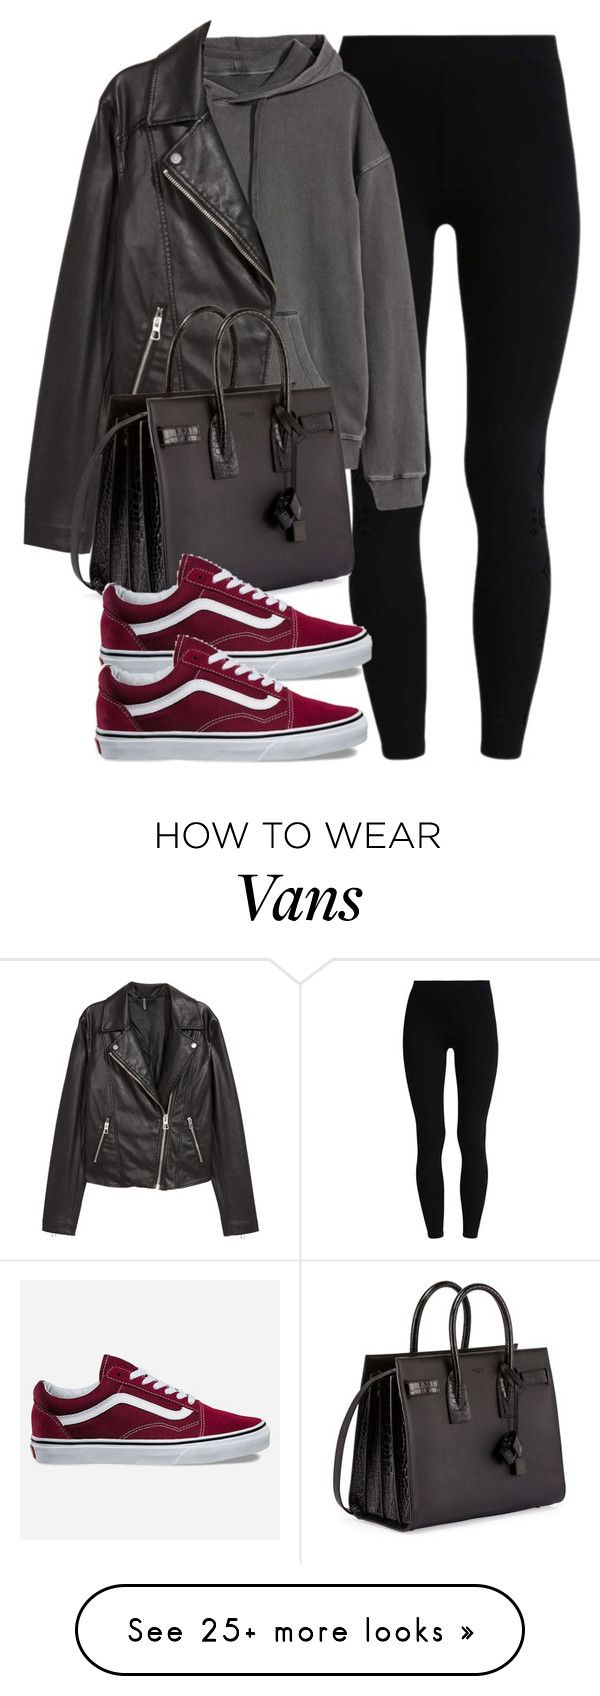 """Sin título #14336"" by vany-alvarado on Polyvore featuring H&M, Yves Saint Laurent and Vans"